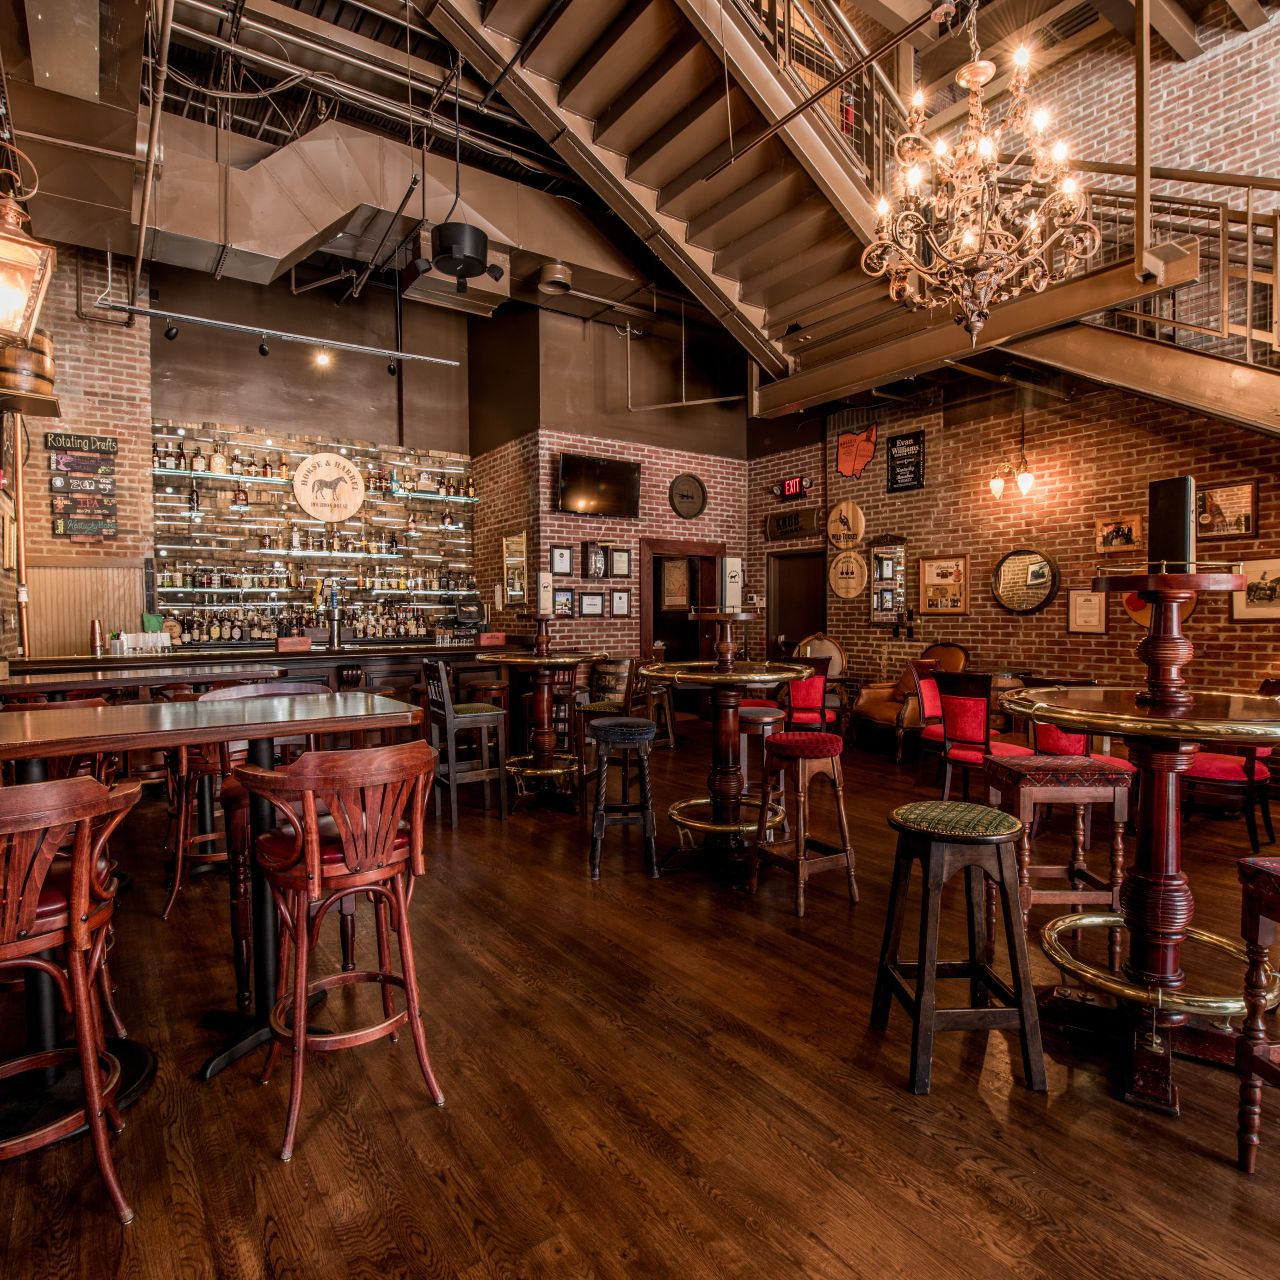 Reward Hardwood Flooring Reviews Of Nicholsons Tavern Pub Restaurant Cincinnati Oh Opentable for 25157235